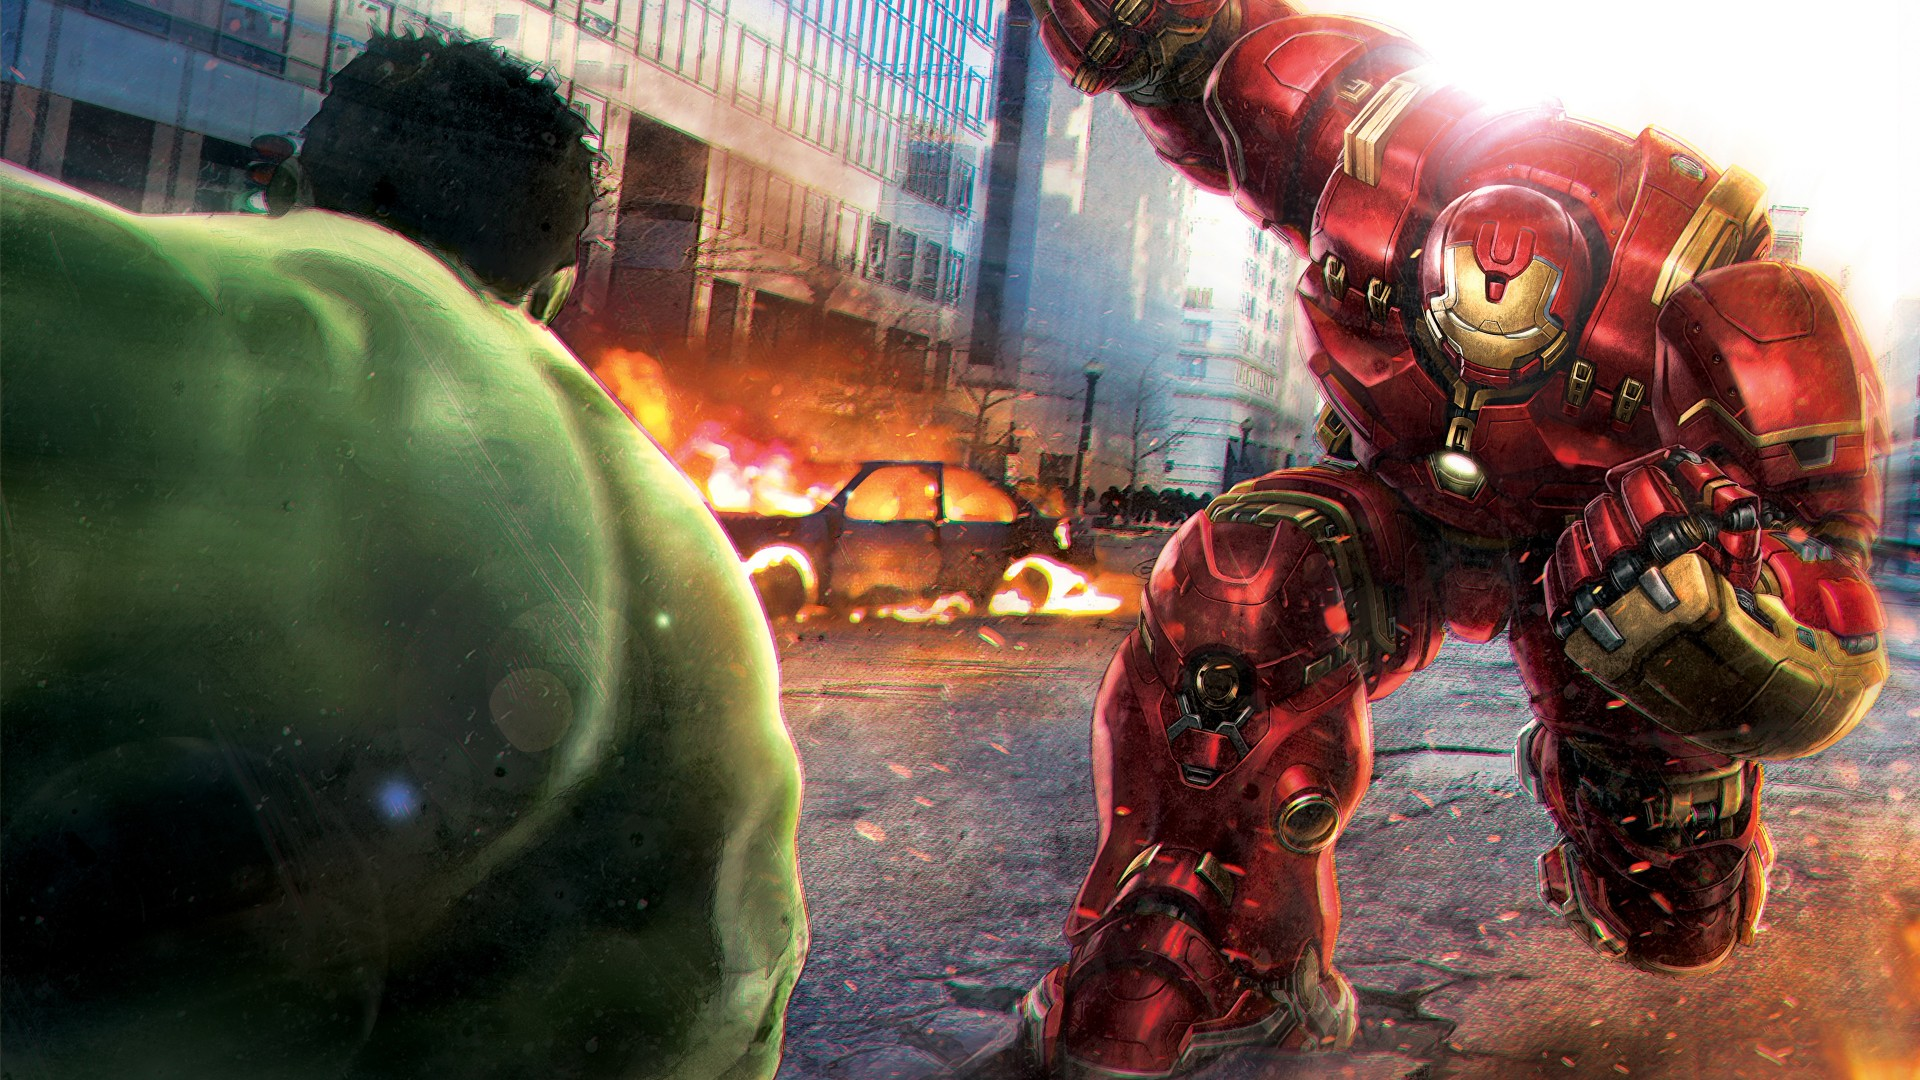 Star Wars Wallpaper 3d Hulk Vs Hulkbuster Wallpapers Hd Wallpapers Id 15635